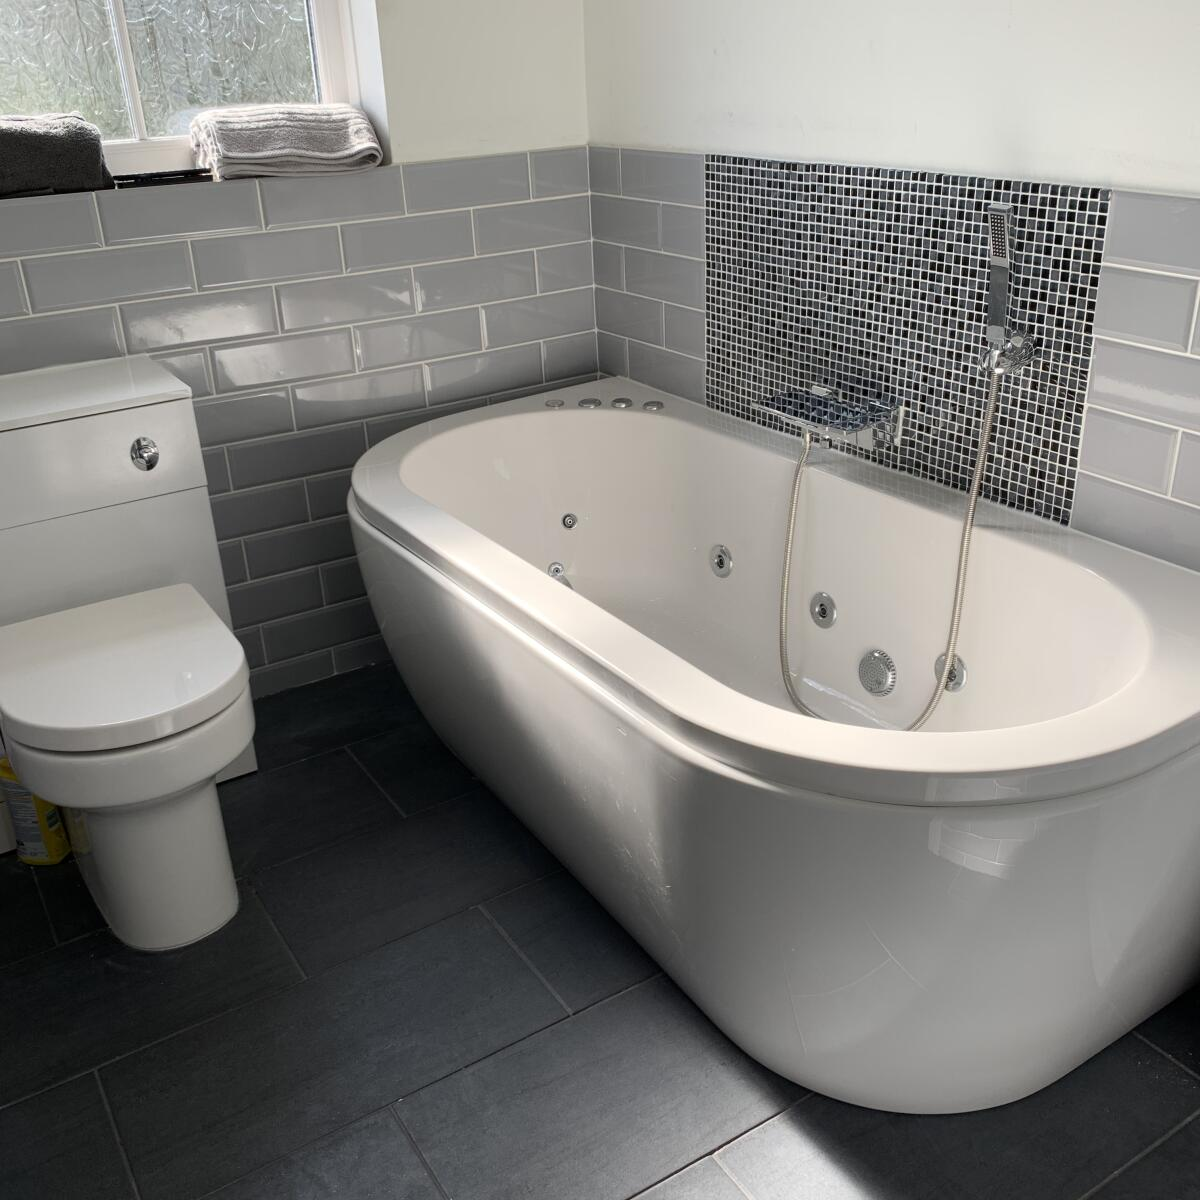 The Whirlpool Bath Shop 5 star review on 16th March 2020